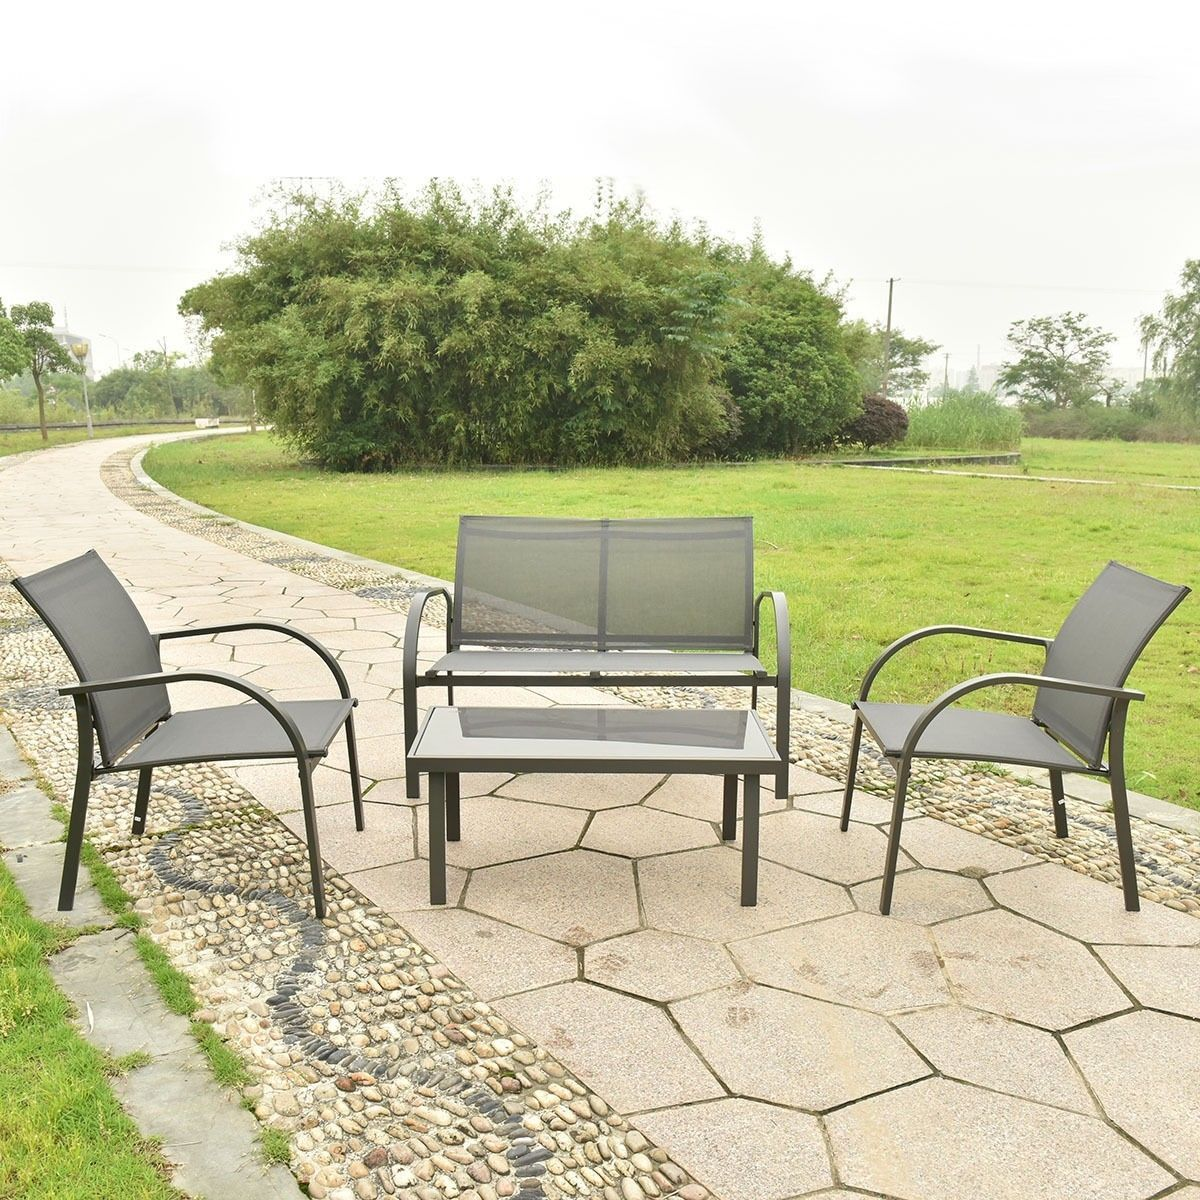 4 Pc Patio Furniture Outdoor Lawn Yard Sofa Chairs Coffee Table Garden Set Seat image 3